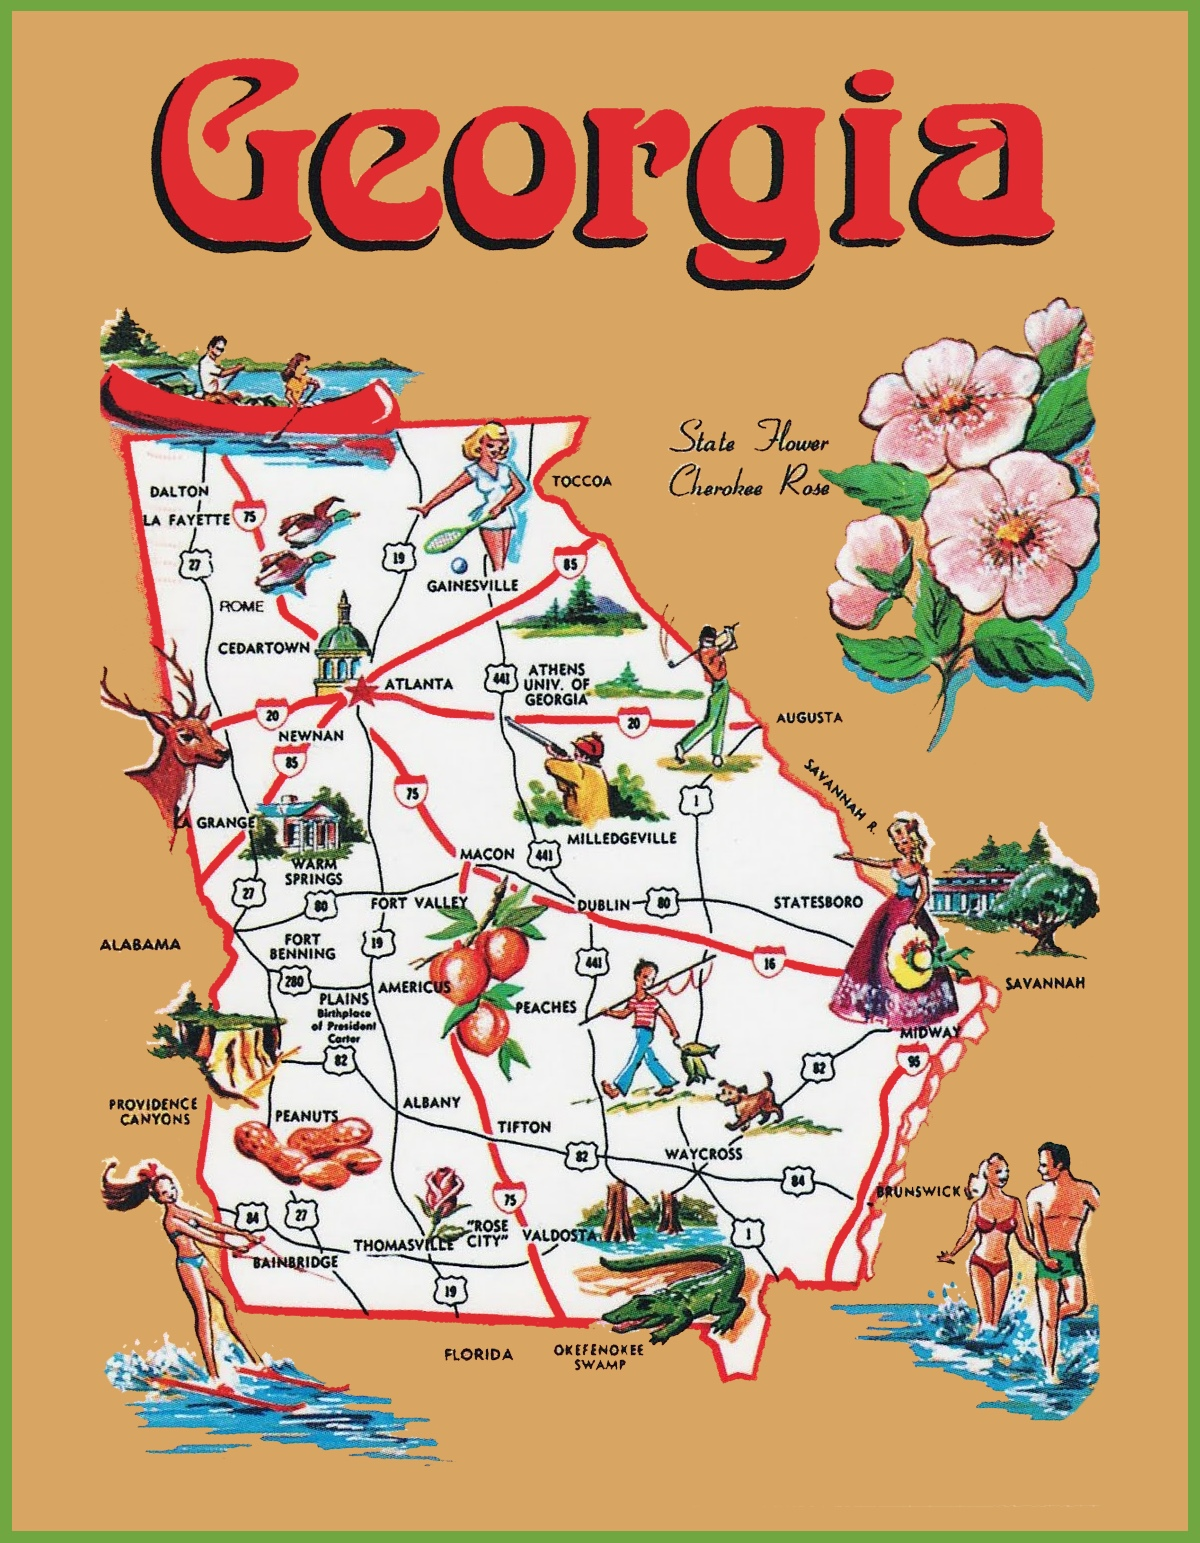 Georgia State Maps USA Maps Of Georgia GA - Map of georgia usa